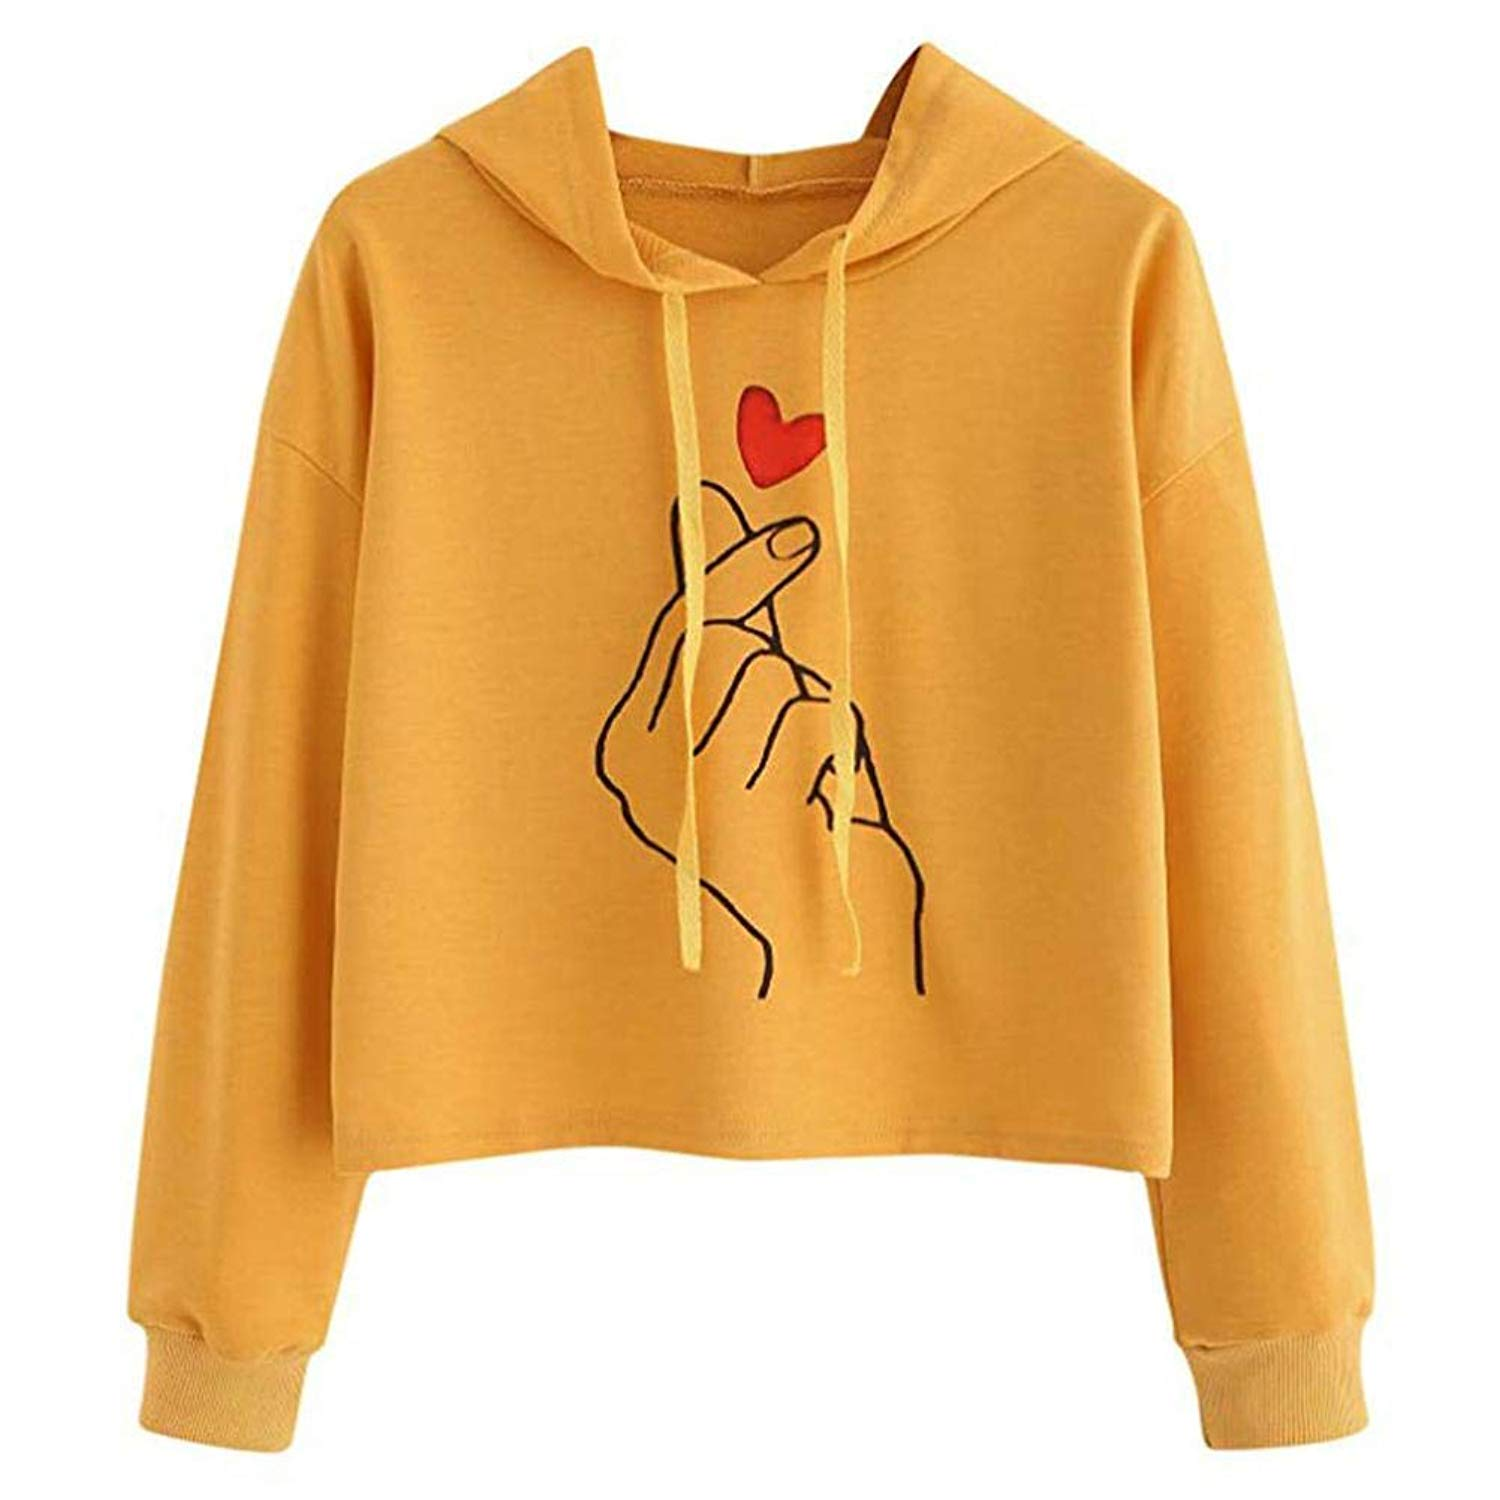 FDelinK Clearance! Women's Sporty Graphic Pullover Teen Girls Drawstring Hoodie Crop Sweatshirt Top